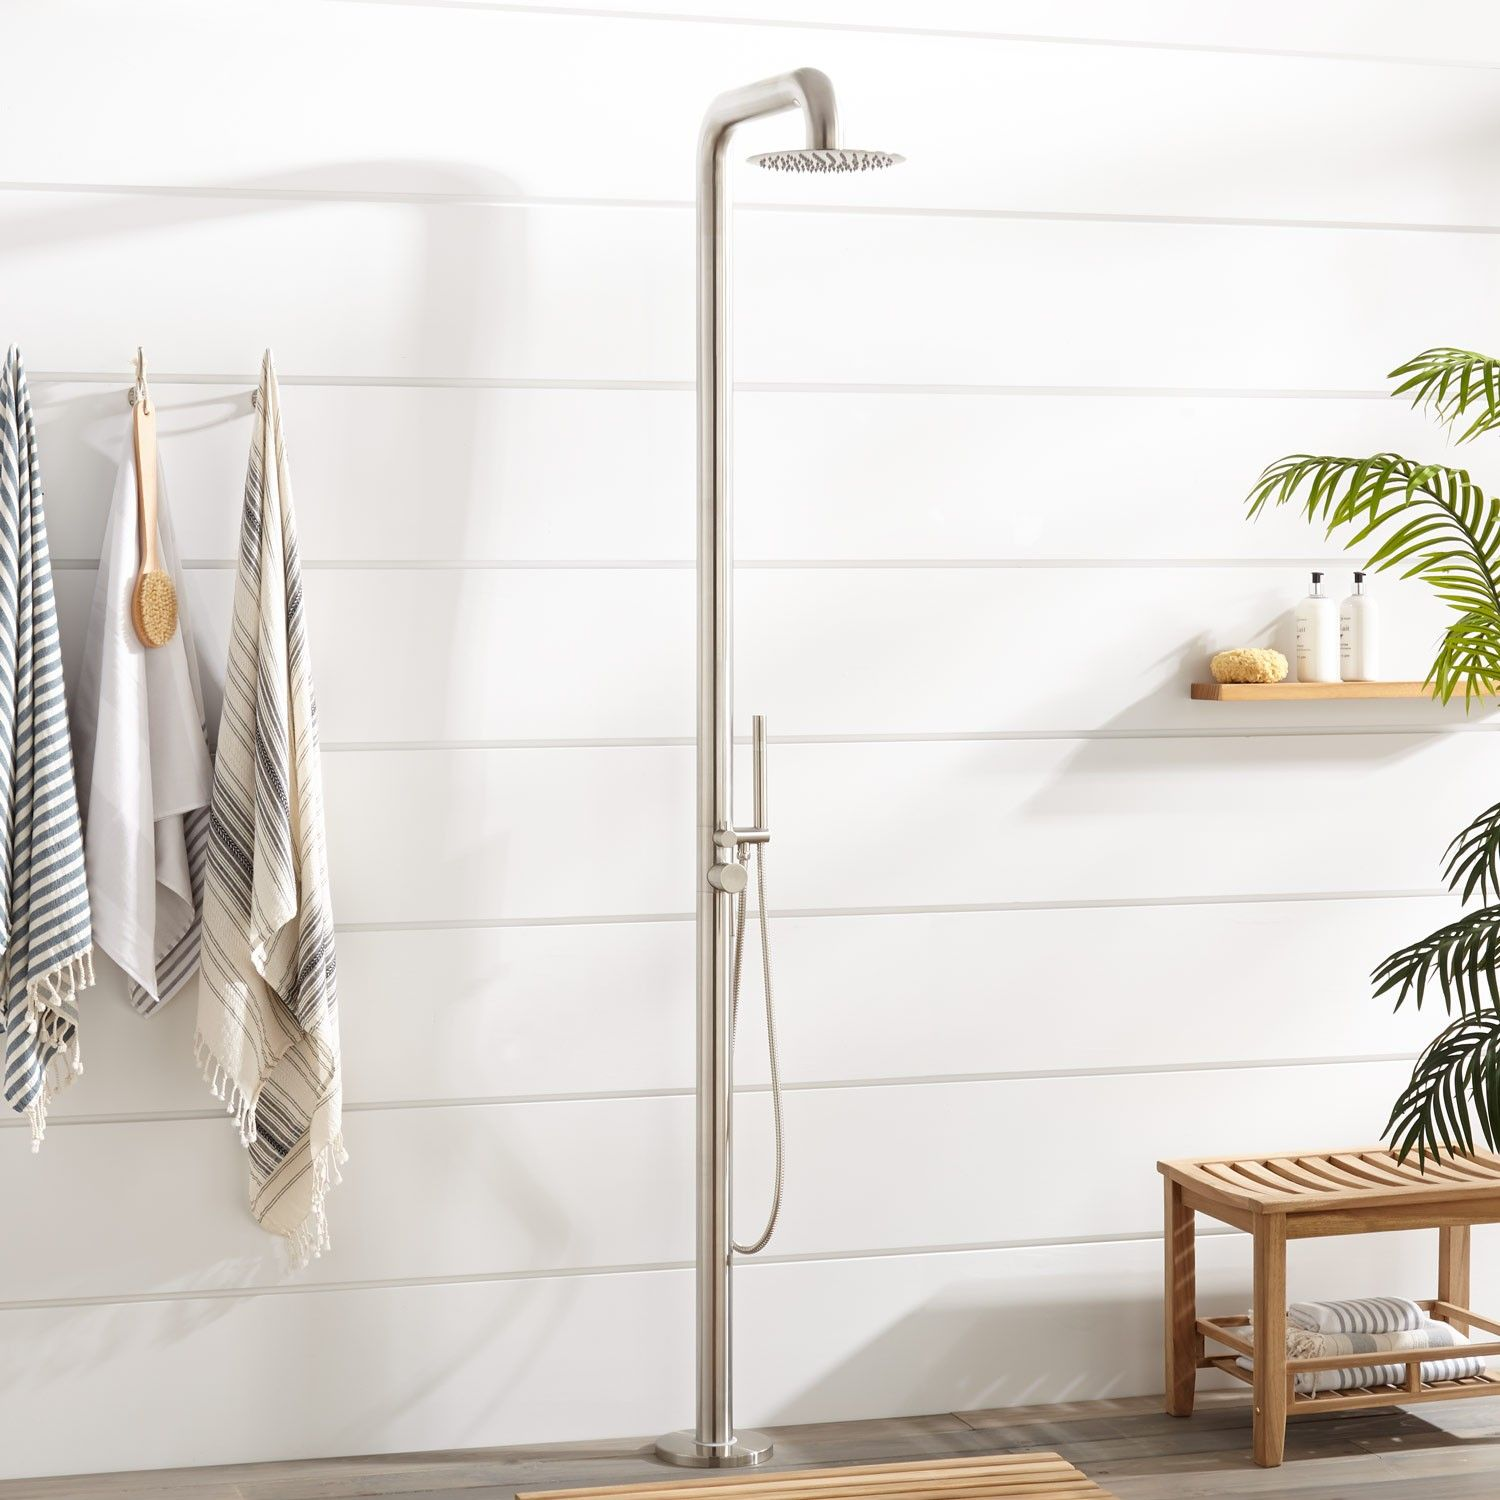 Cavendish Thermostatic Freestanding Outdoor Shower With Brass Hand